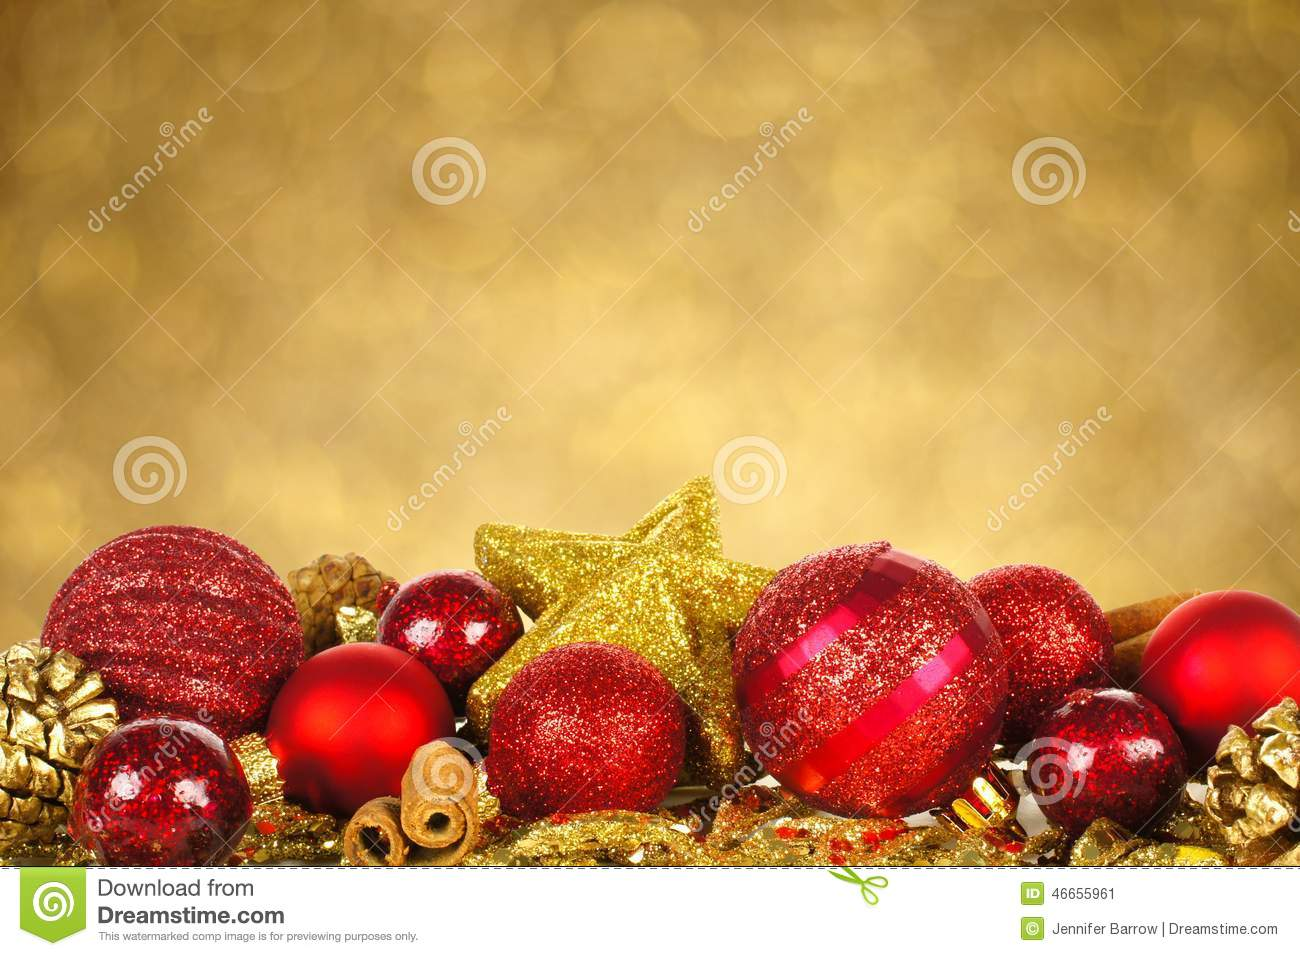 Christmas Ornaments With Twinkling Background Stock Photo ...